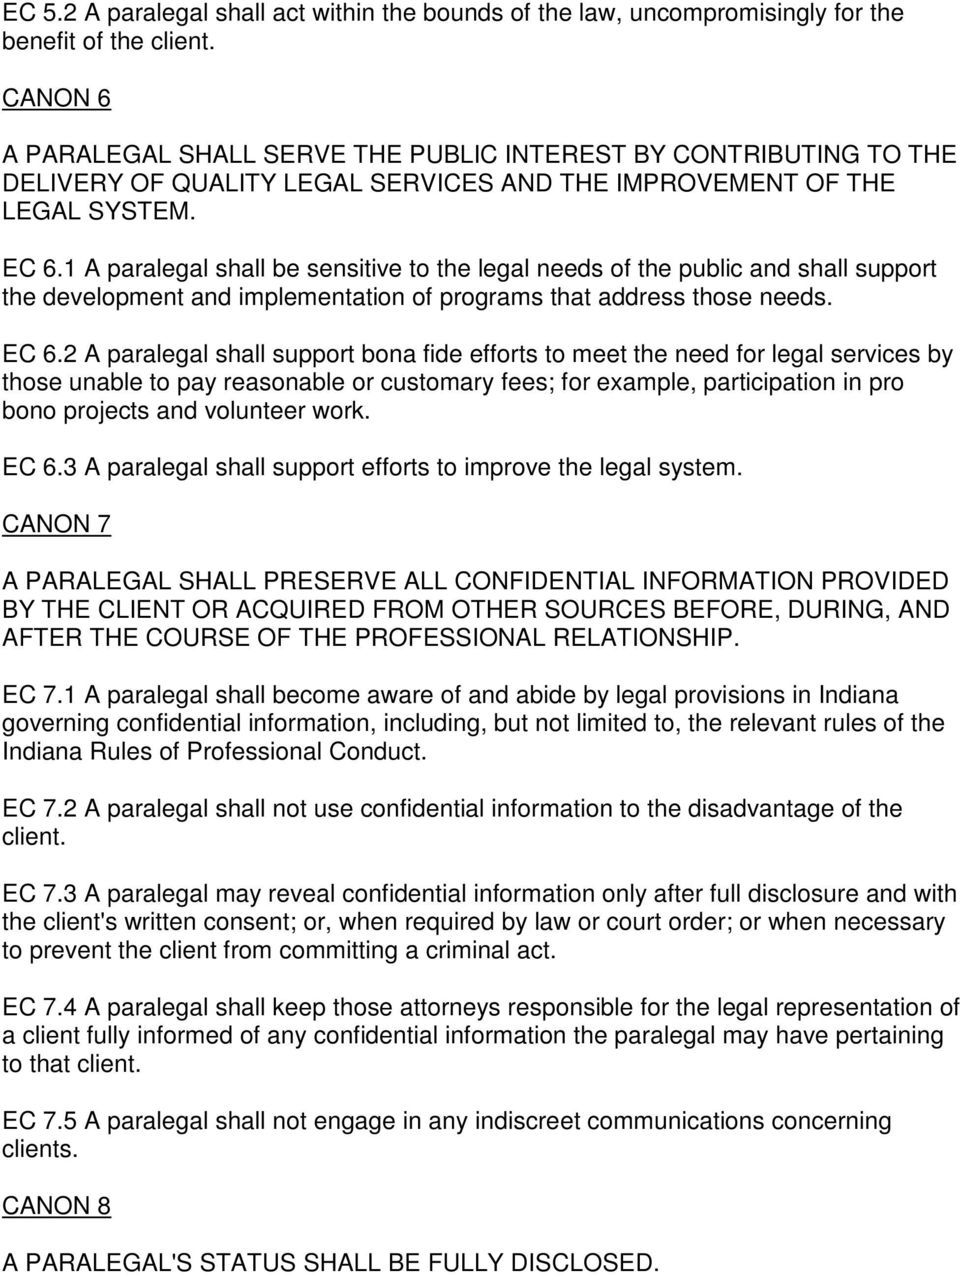 1 A paralegal shall be sensitive to the legal needs of the public and shall support the development and implementation of programs that address those needs. EC 6.